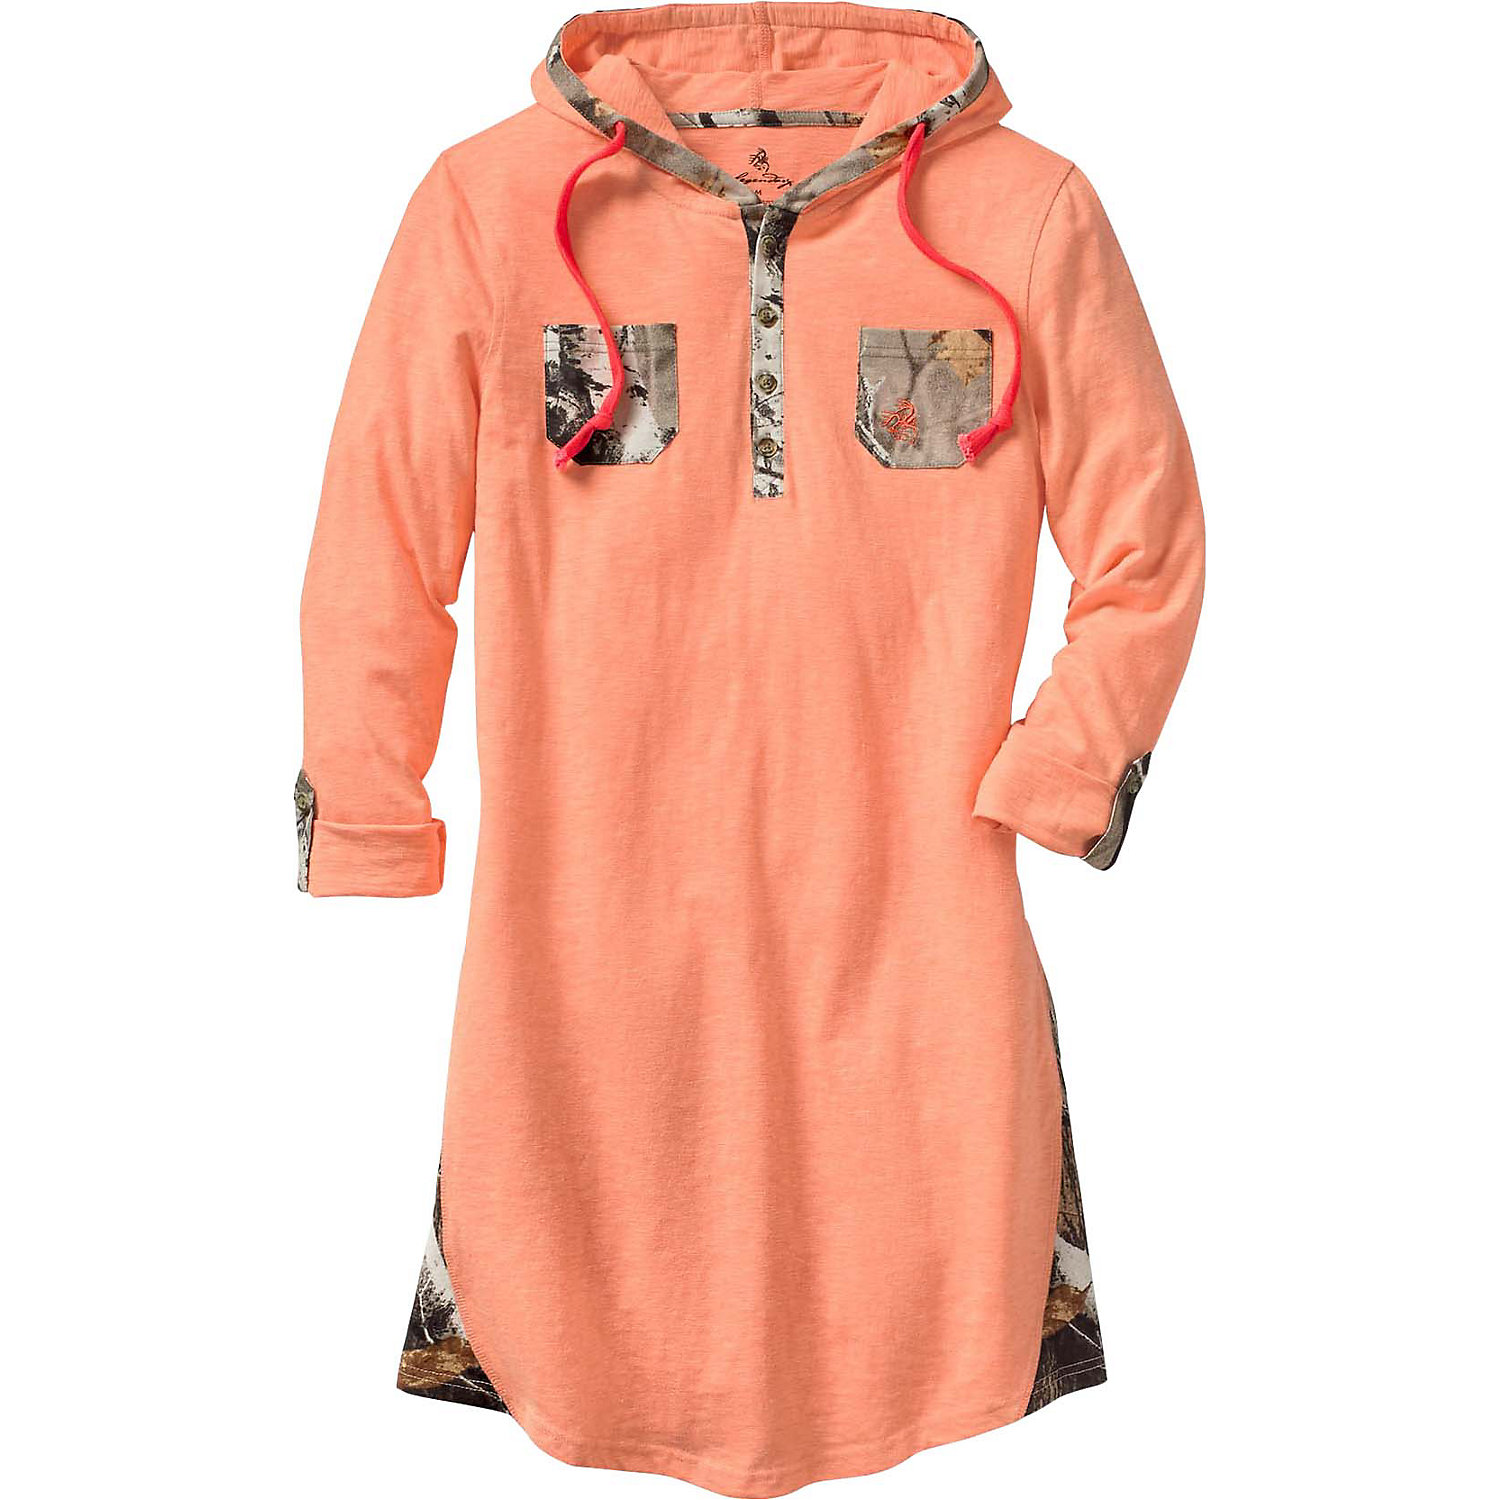 Legendary Whitetails Ladies Coral Reef Swim Cover-Up Dress